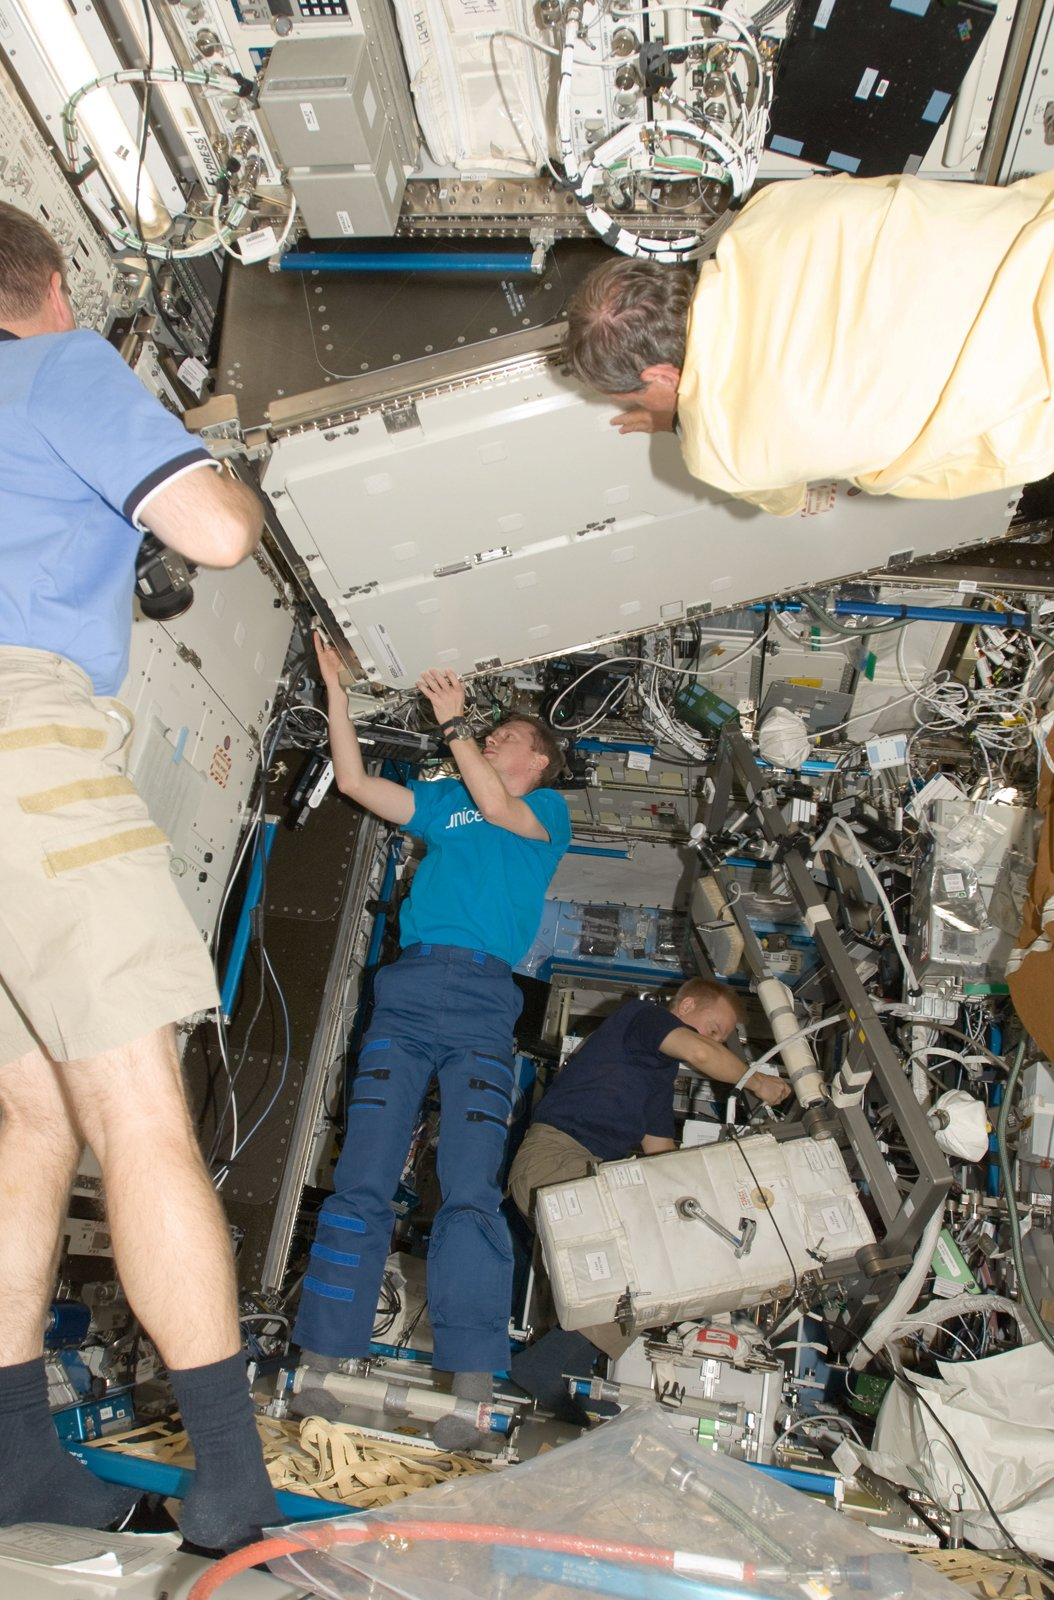 European Space Agency astronauts Christer Fuglesang (top foreground), STS-128 mission specialist; and Frank De Winne, Expedition 20 flight engineer, install a Materials Science Research Rack-1 (MSRR-1) in the Destiny laboratory of the ISS. NASA astronaut Kevin Ford (partially out of frame), STS-128 pilot; is at left; and NASA astronaut Tim Kopra, mission specialist, works in the background. Photo taken September 2, 2009.   Courtesy of NASA  Photo 19 of 32 in Space Living: Astro Home